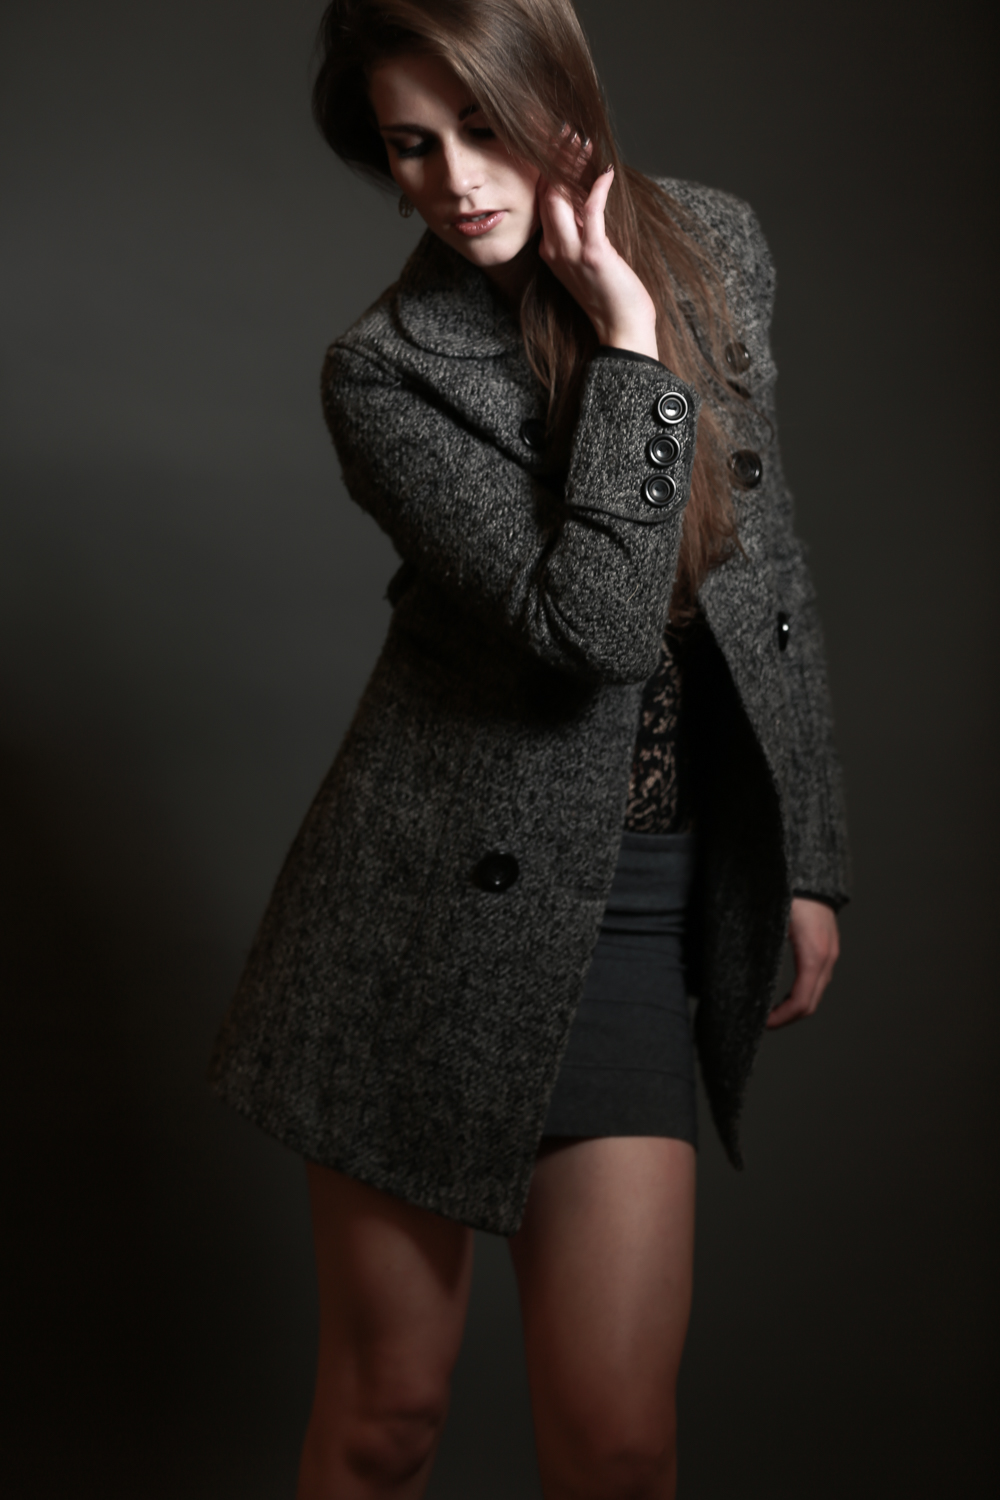 Montana Fashion Model Photographer-4392.jpg